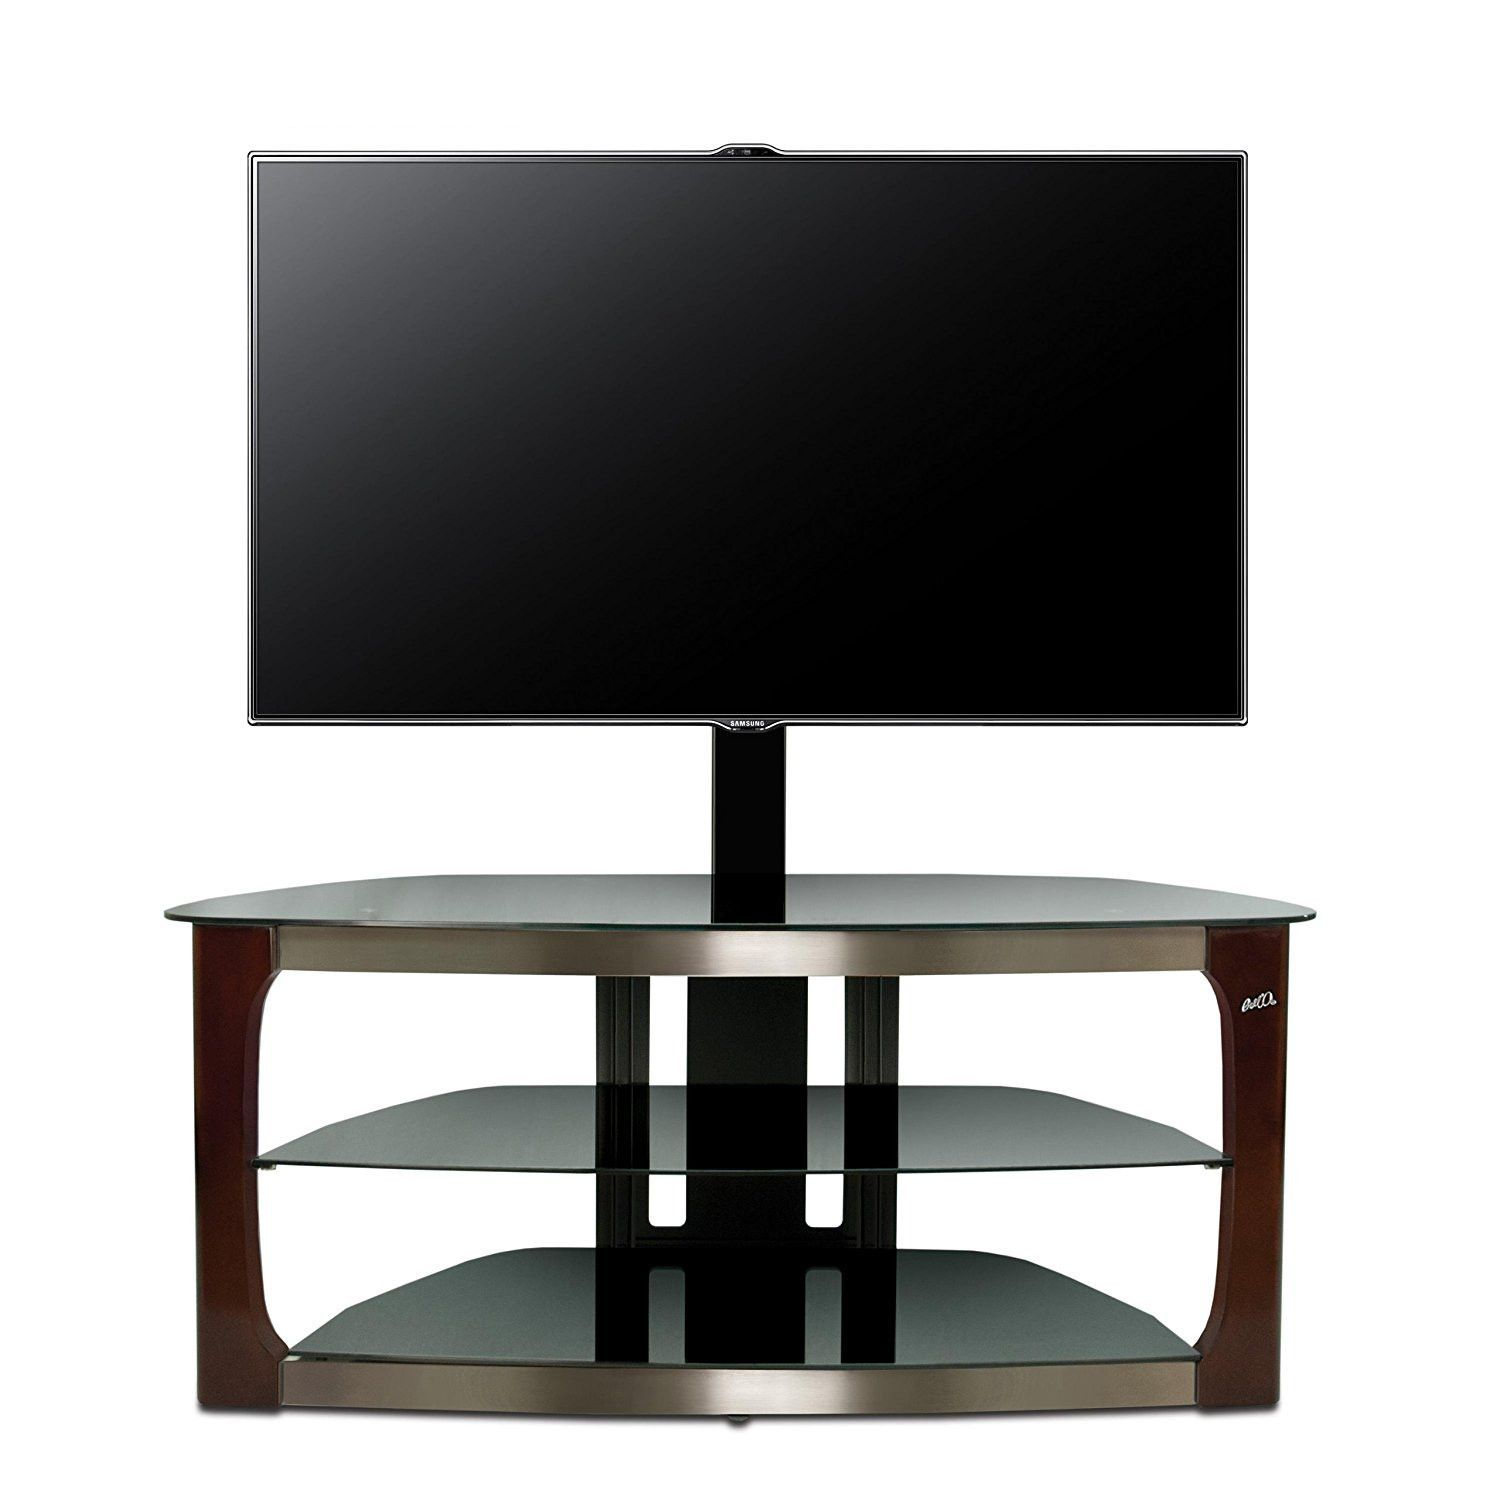 Buy BellO Triple Play 52 in Universal Flat Panel TV Stand Dark